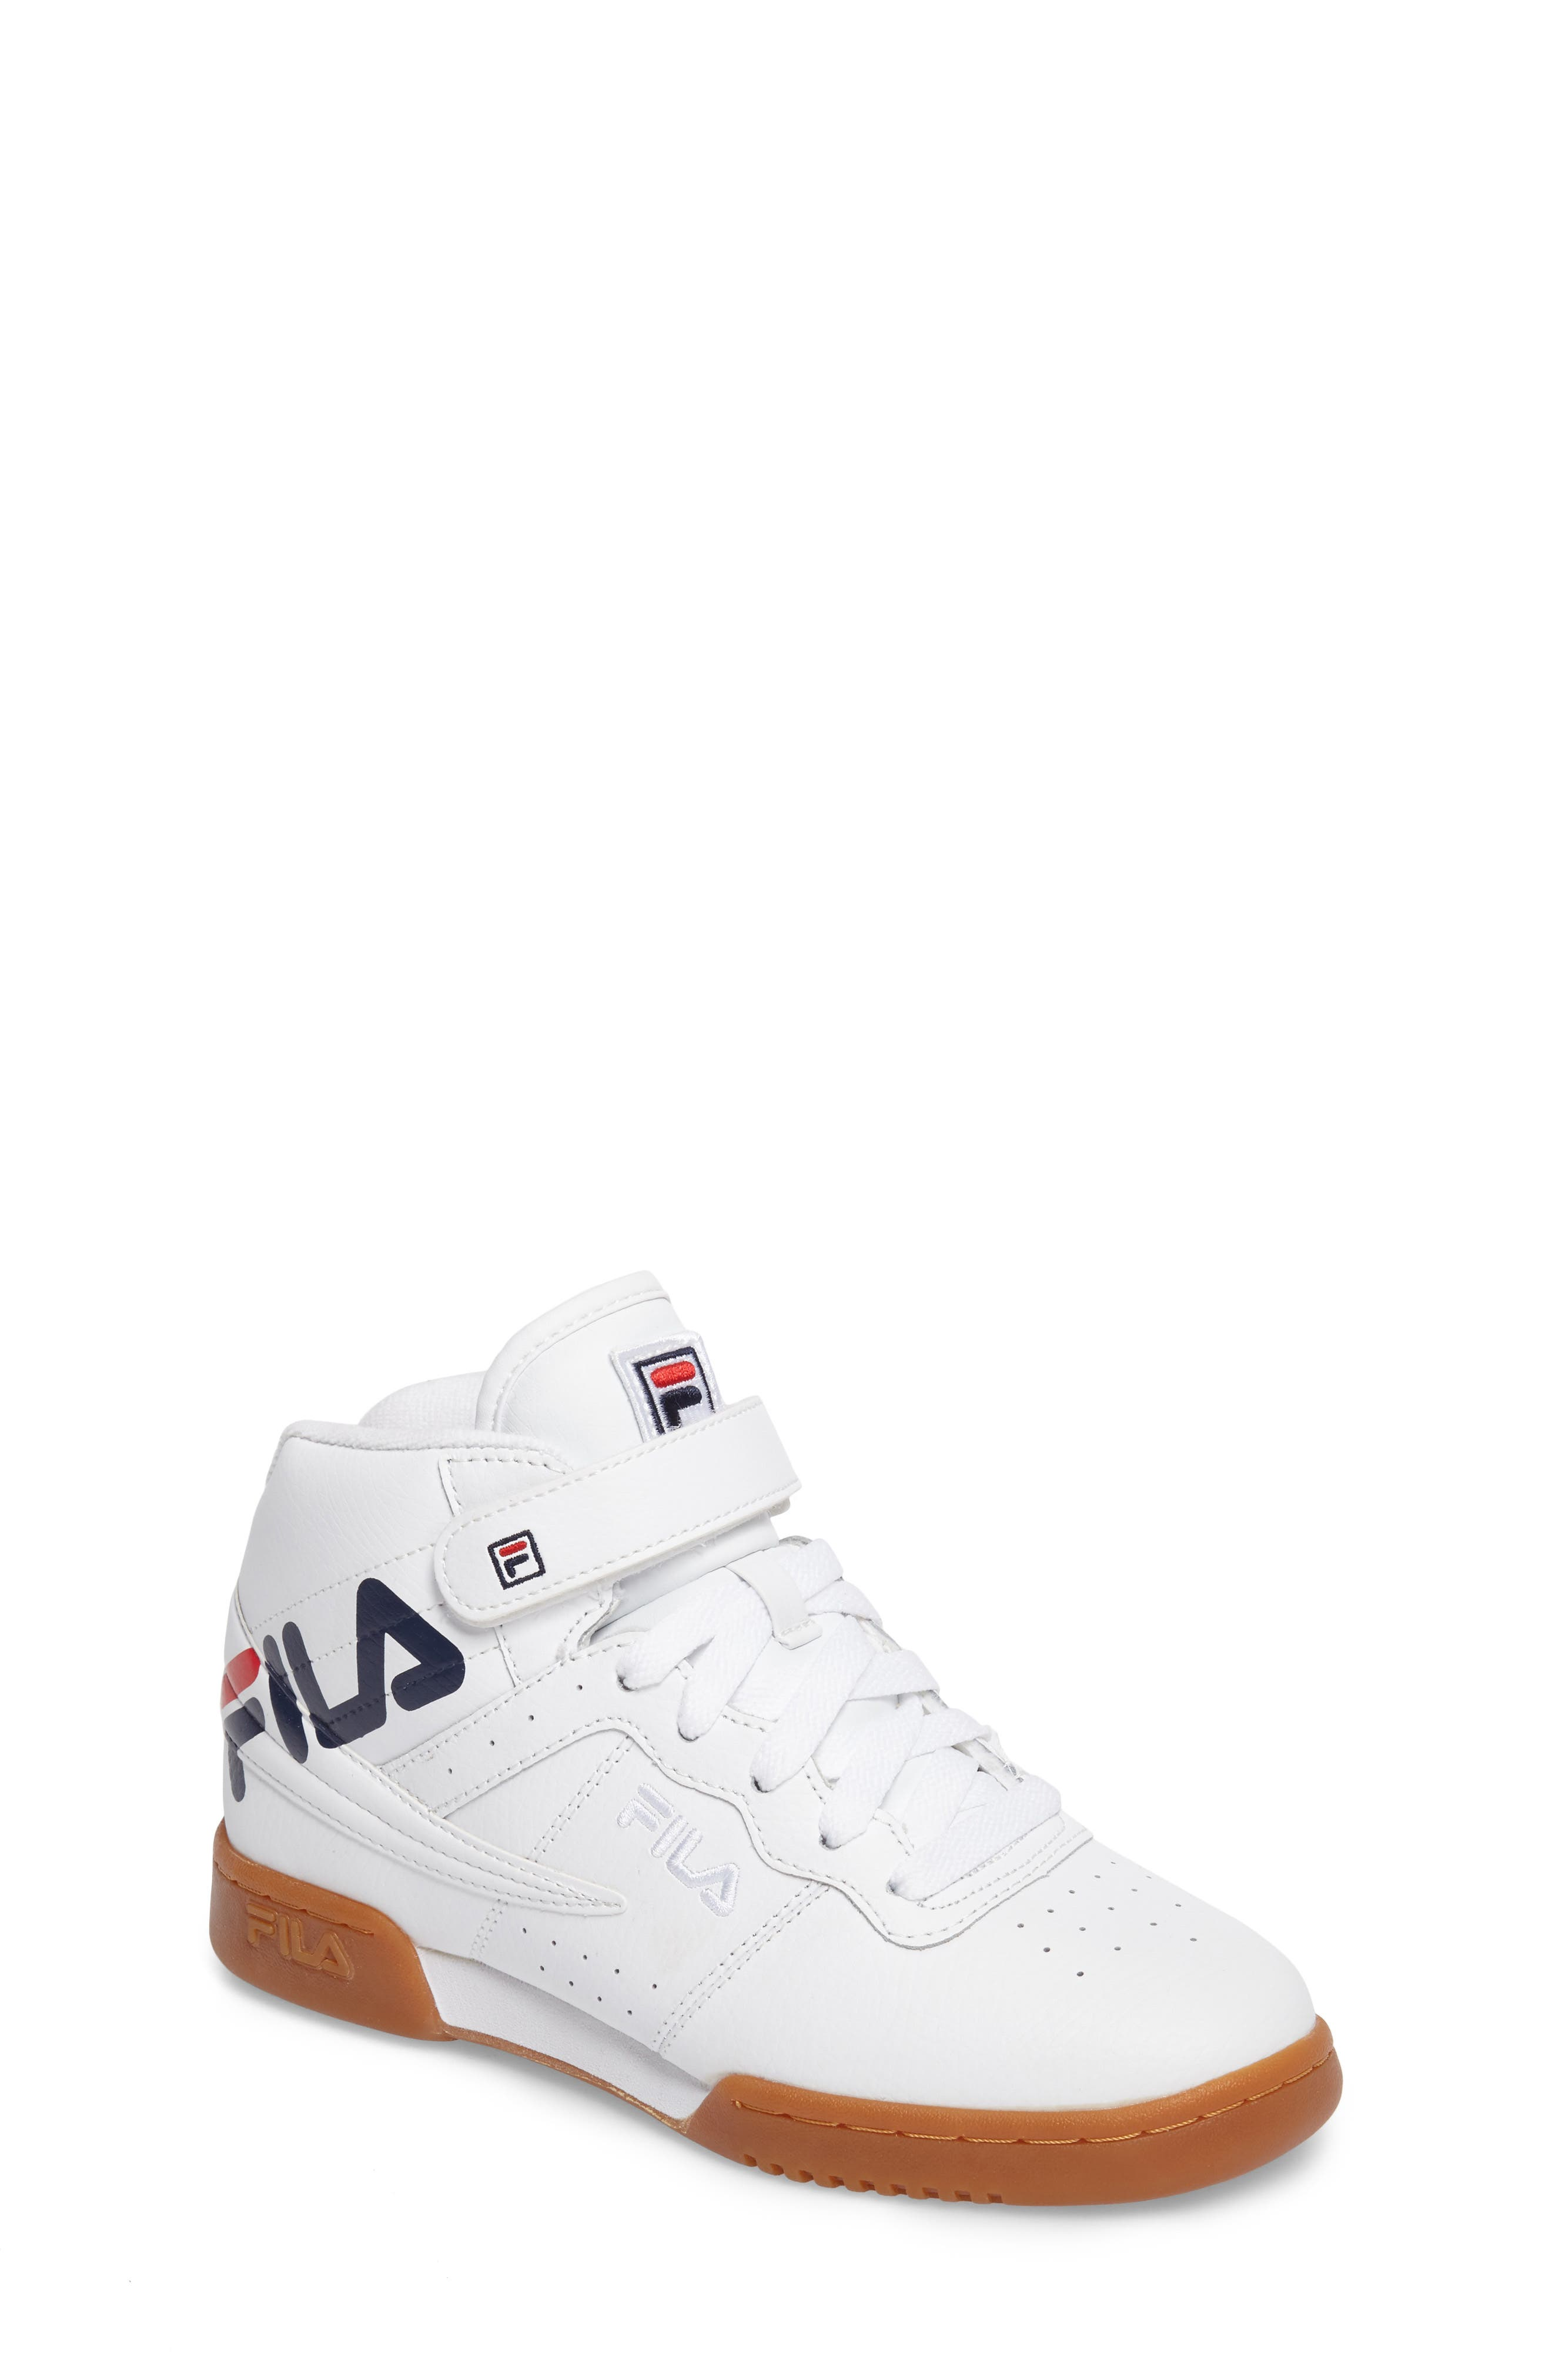 Original Fitness Logo Mid Top Sneaker,                         Main,                         color, White/ Navy/ Red